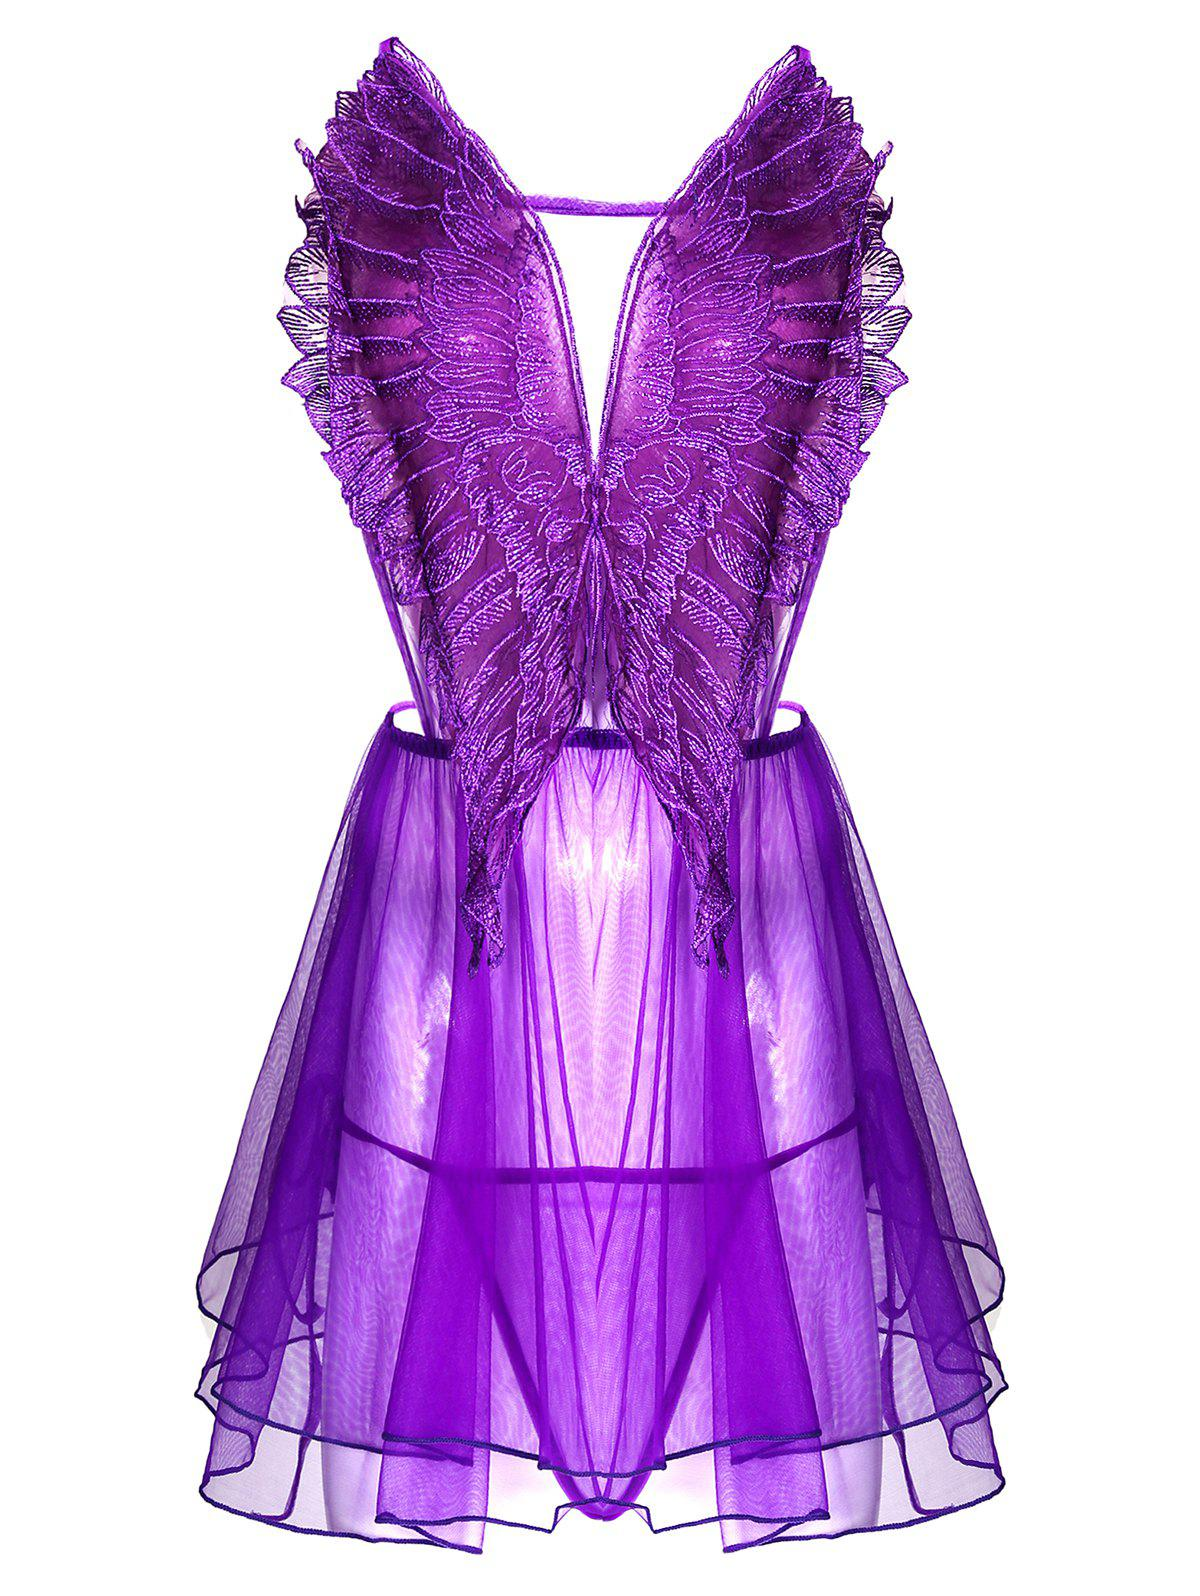 Criss Cross Embroidered Sheer Mesh Lingerie Babydoll - PURPLE ONE SIZE